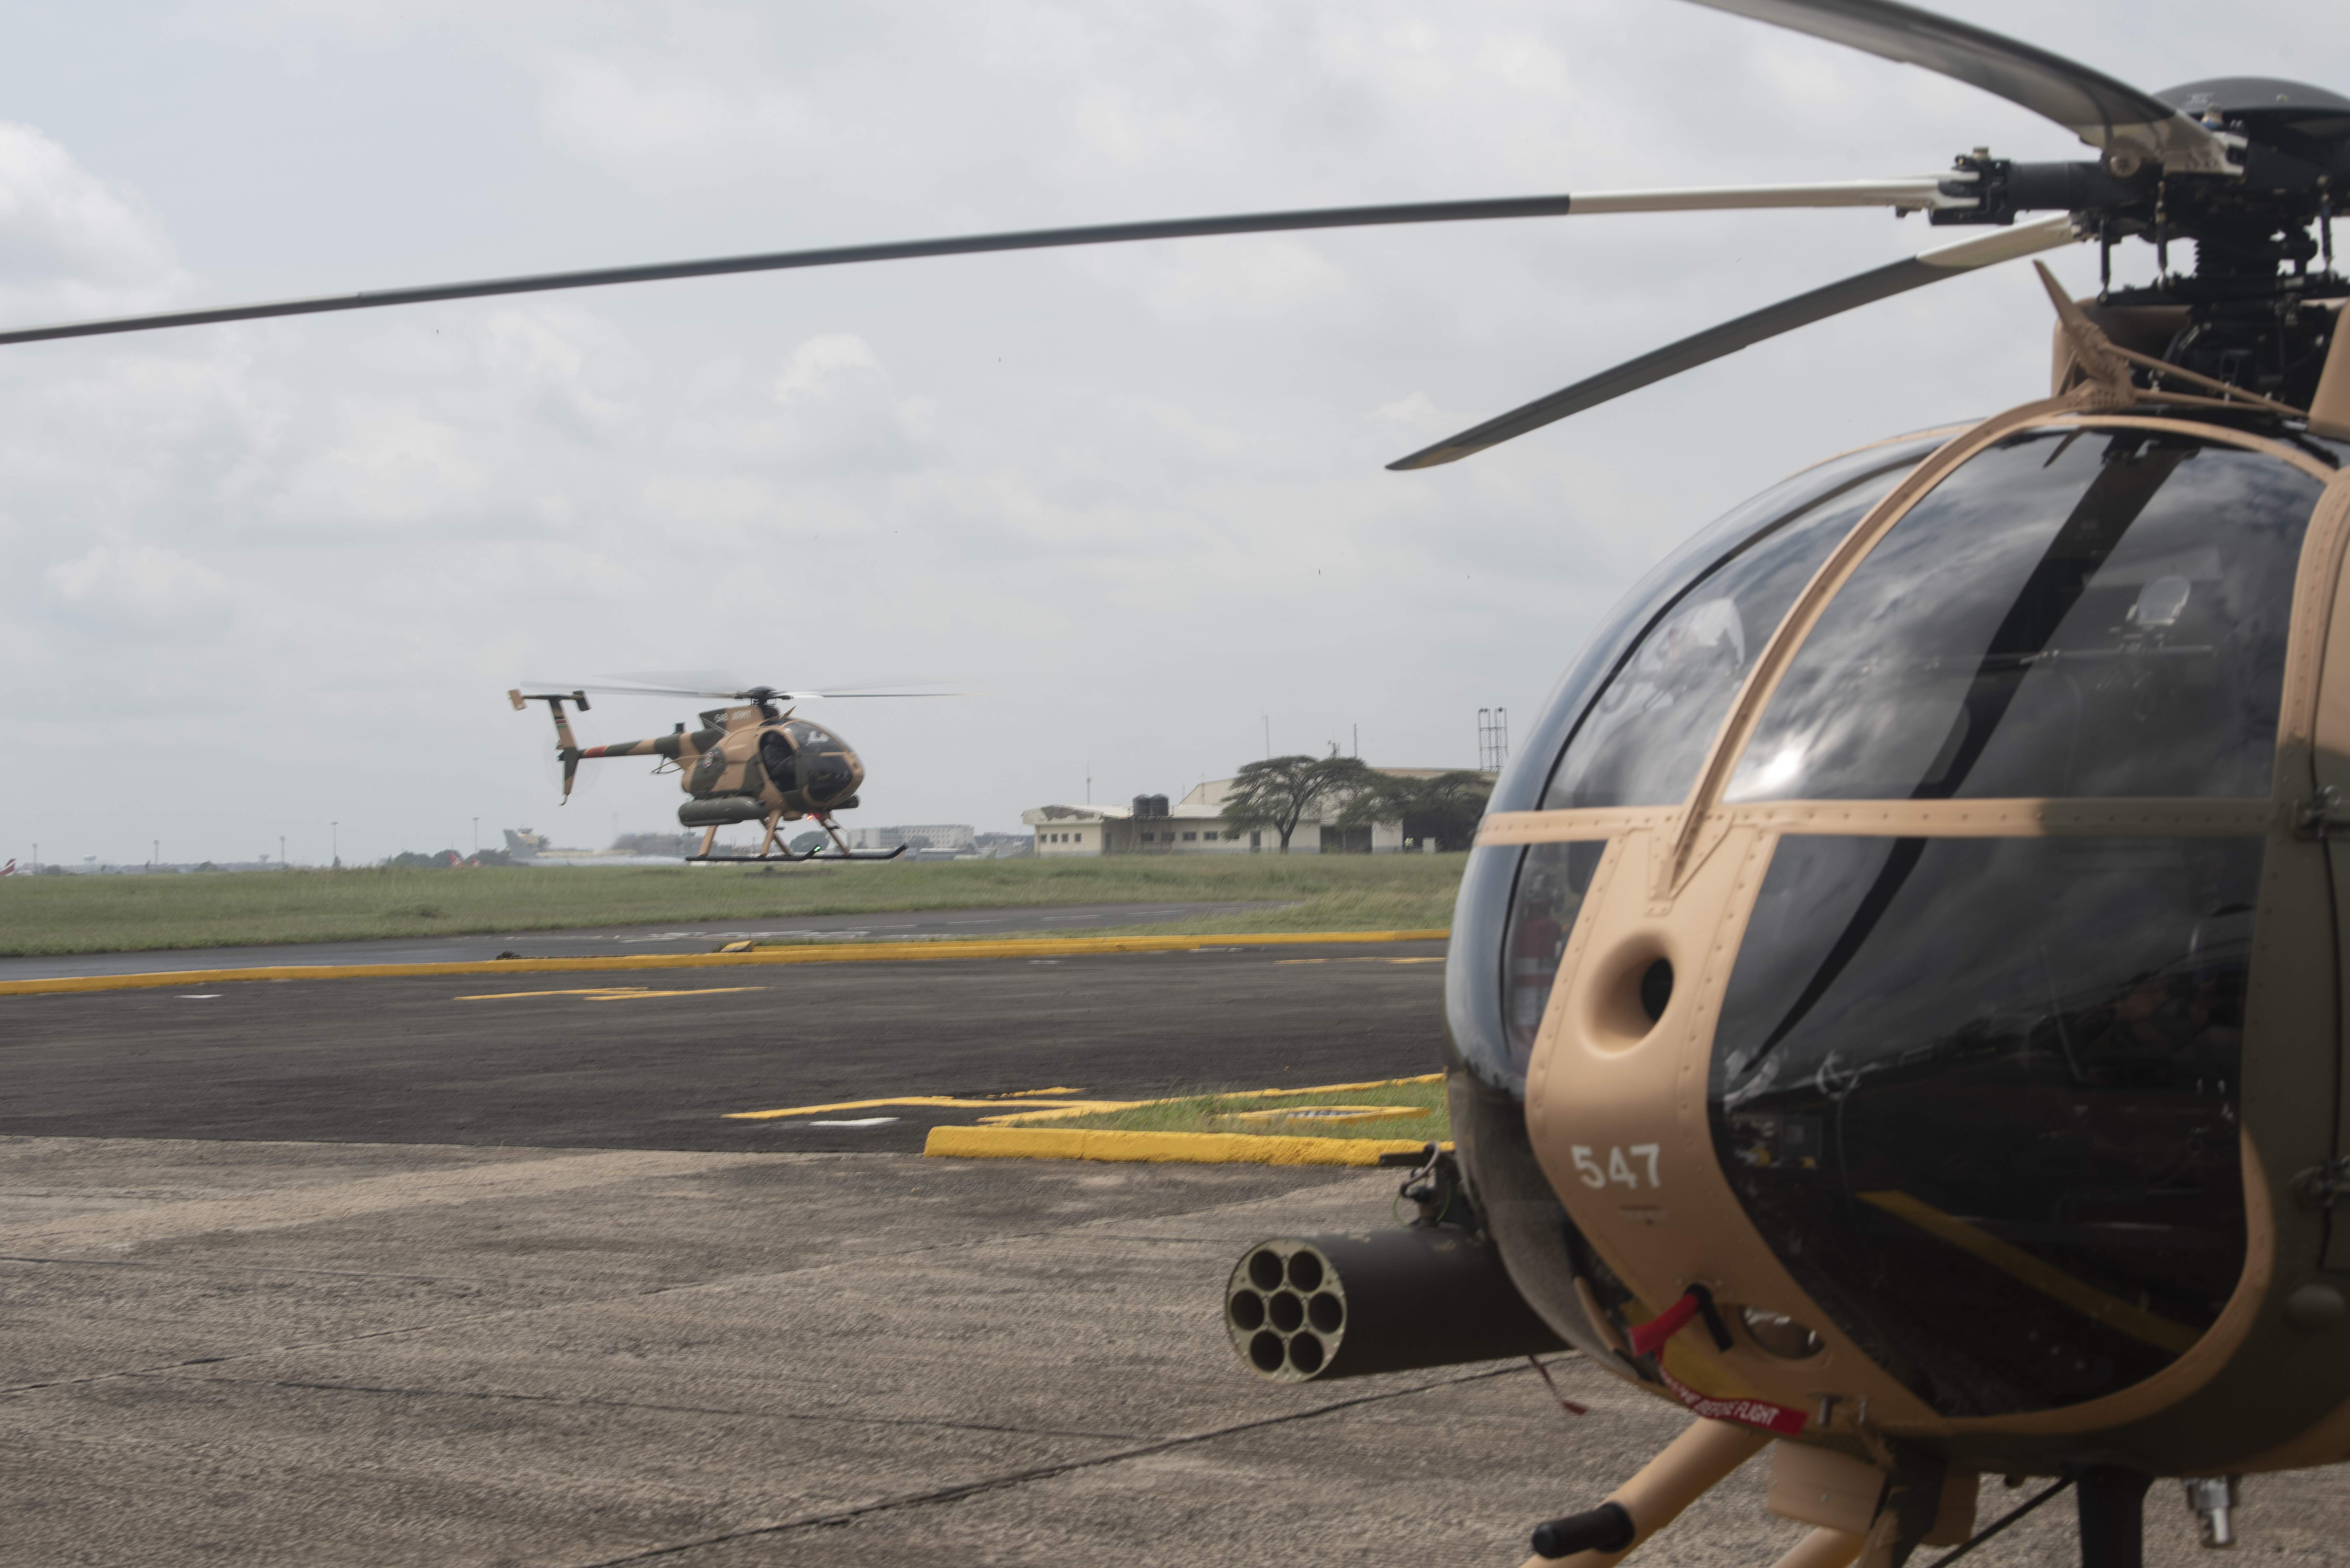 An MD-530F Cayuse Warrior Helicopter prepares to land after a flyover during a Helicopter exchange ceremony, at Embakasi Barracks, Kenya, Jan. 23, 2020. During the ceremony, six MD-530F Cayuse Warrior helicopters were delivered to the KDF in a symbolic handover. Six more MD-530F helicopters will be delivered to the KDF in the near future. (U.S. Air Force photo by Tech. Sgt. Ashley Nicole Taylor)